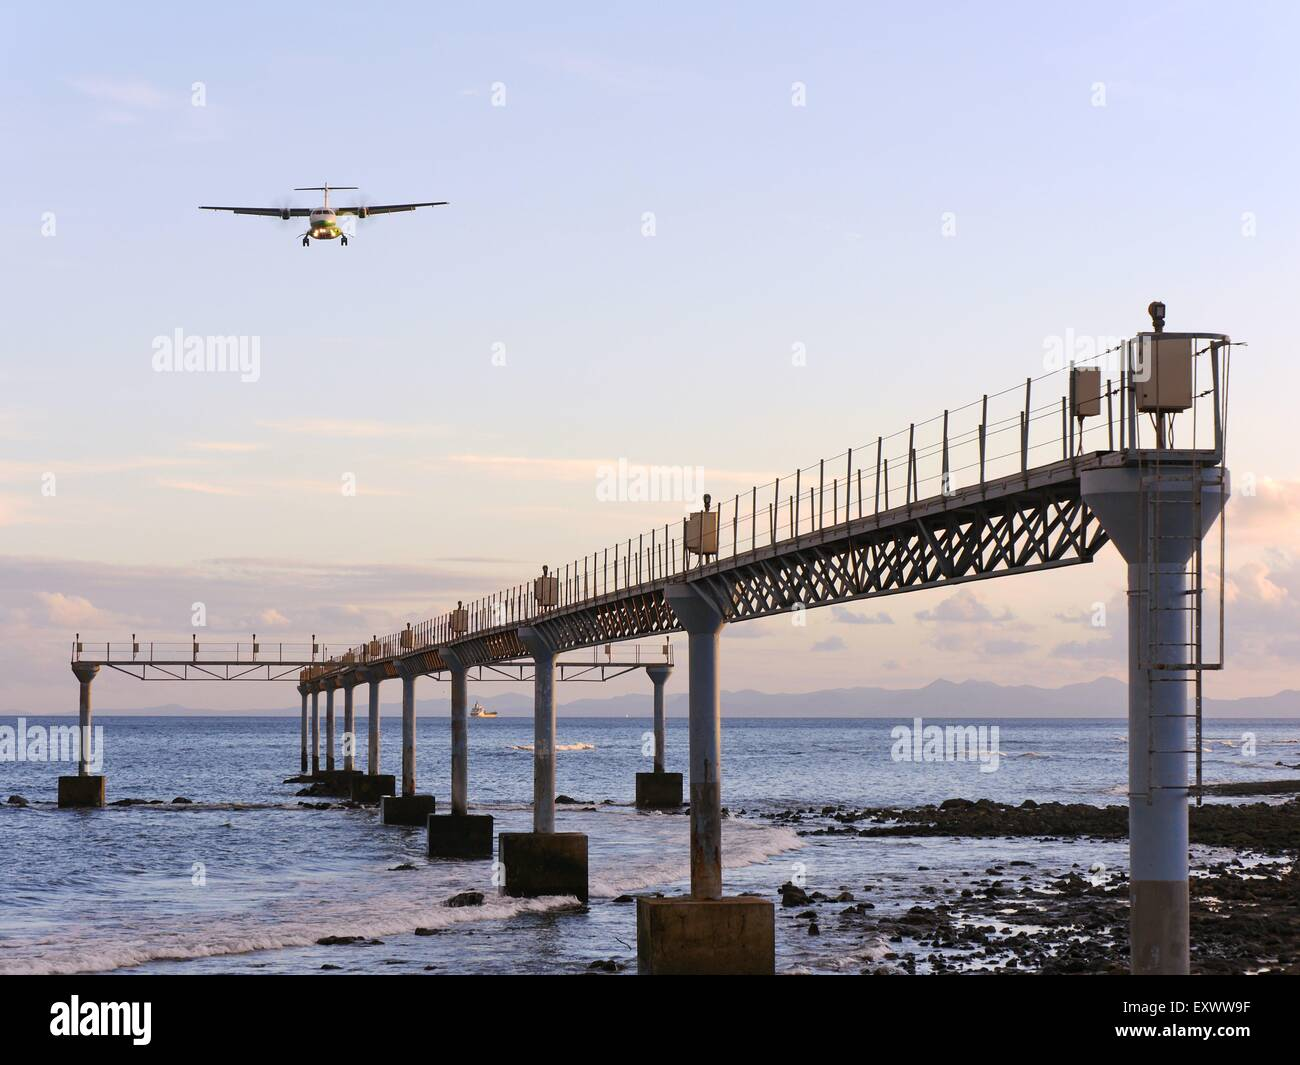 Propeller plane approach for a landing, Arrecife, Lanzarote, Canaries, Spain, Europe - Stock Image